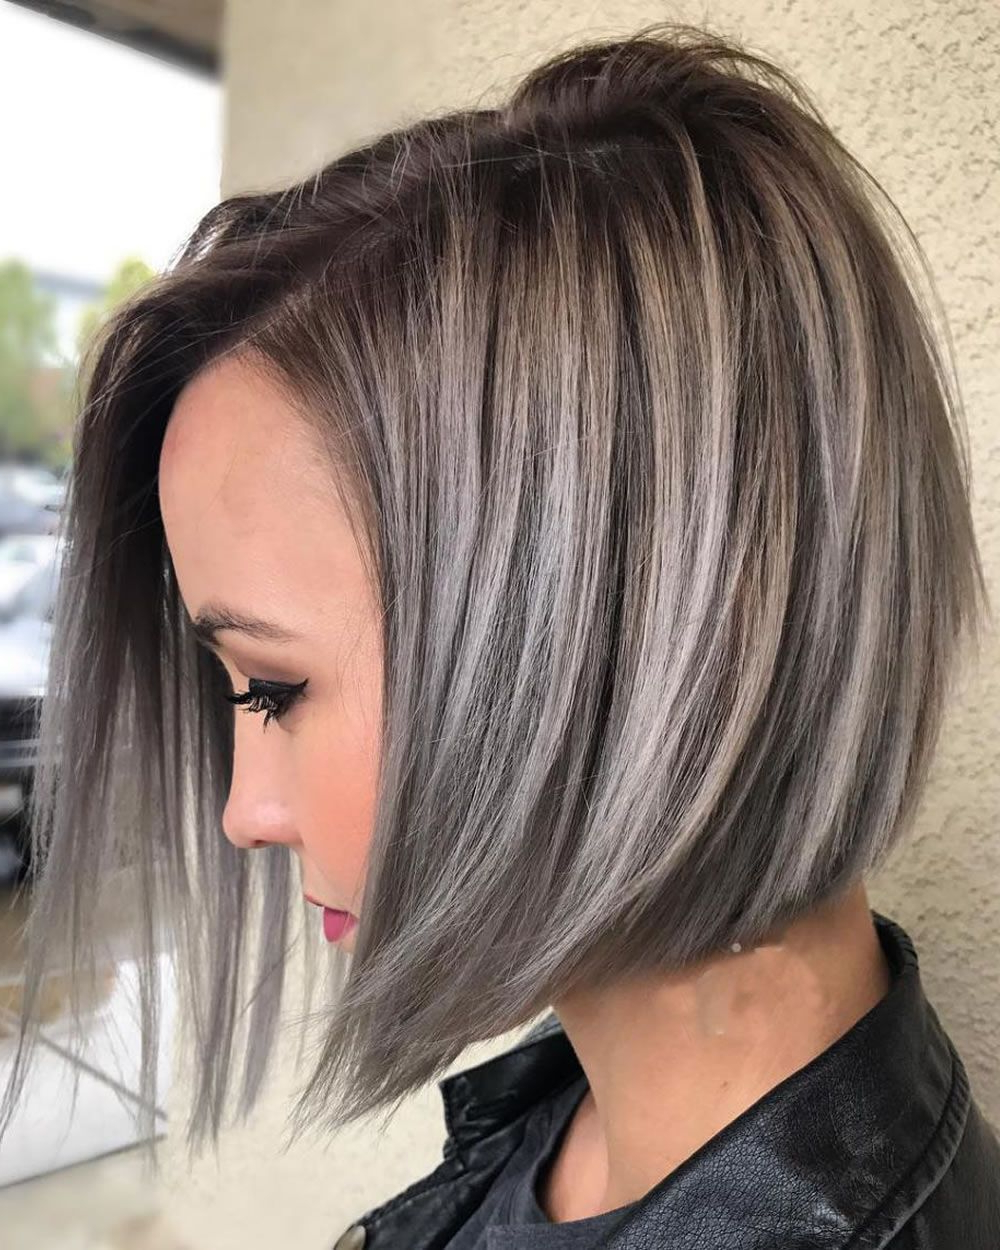 Pinstephanie Joseph On Hair | Pinterest | Hair, Hair Styles And Intended For Silver Balayage Bob Haircuts With Swoopy Layers (View 17 of 20)